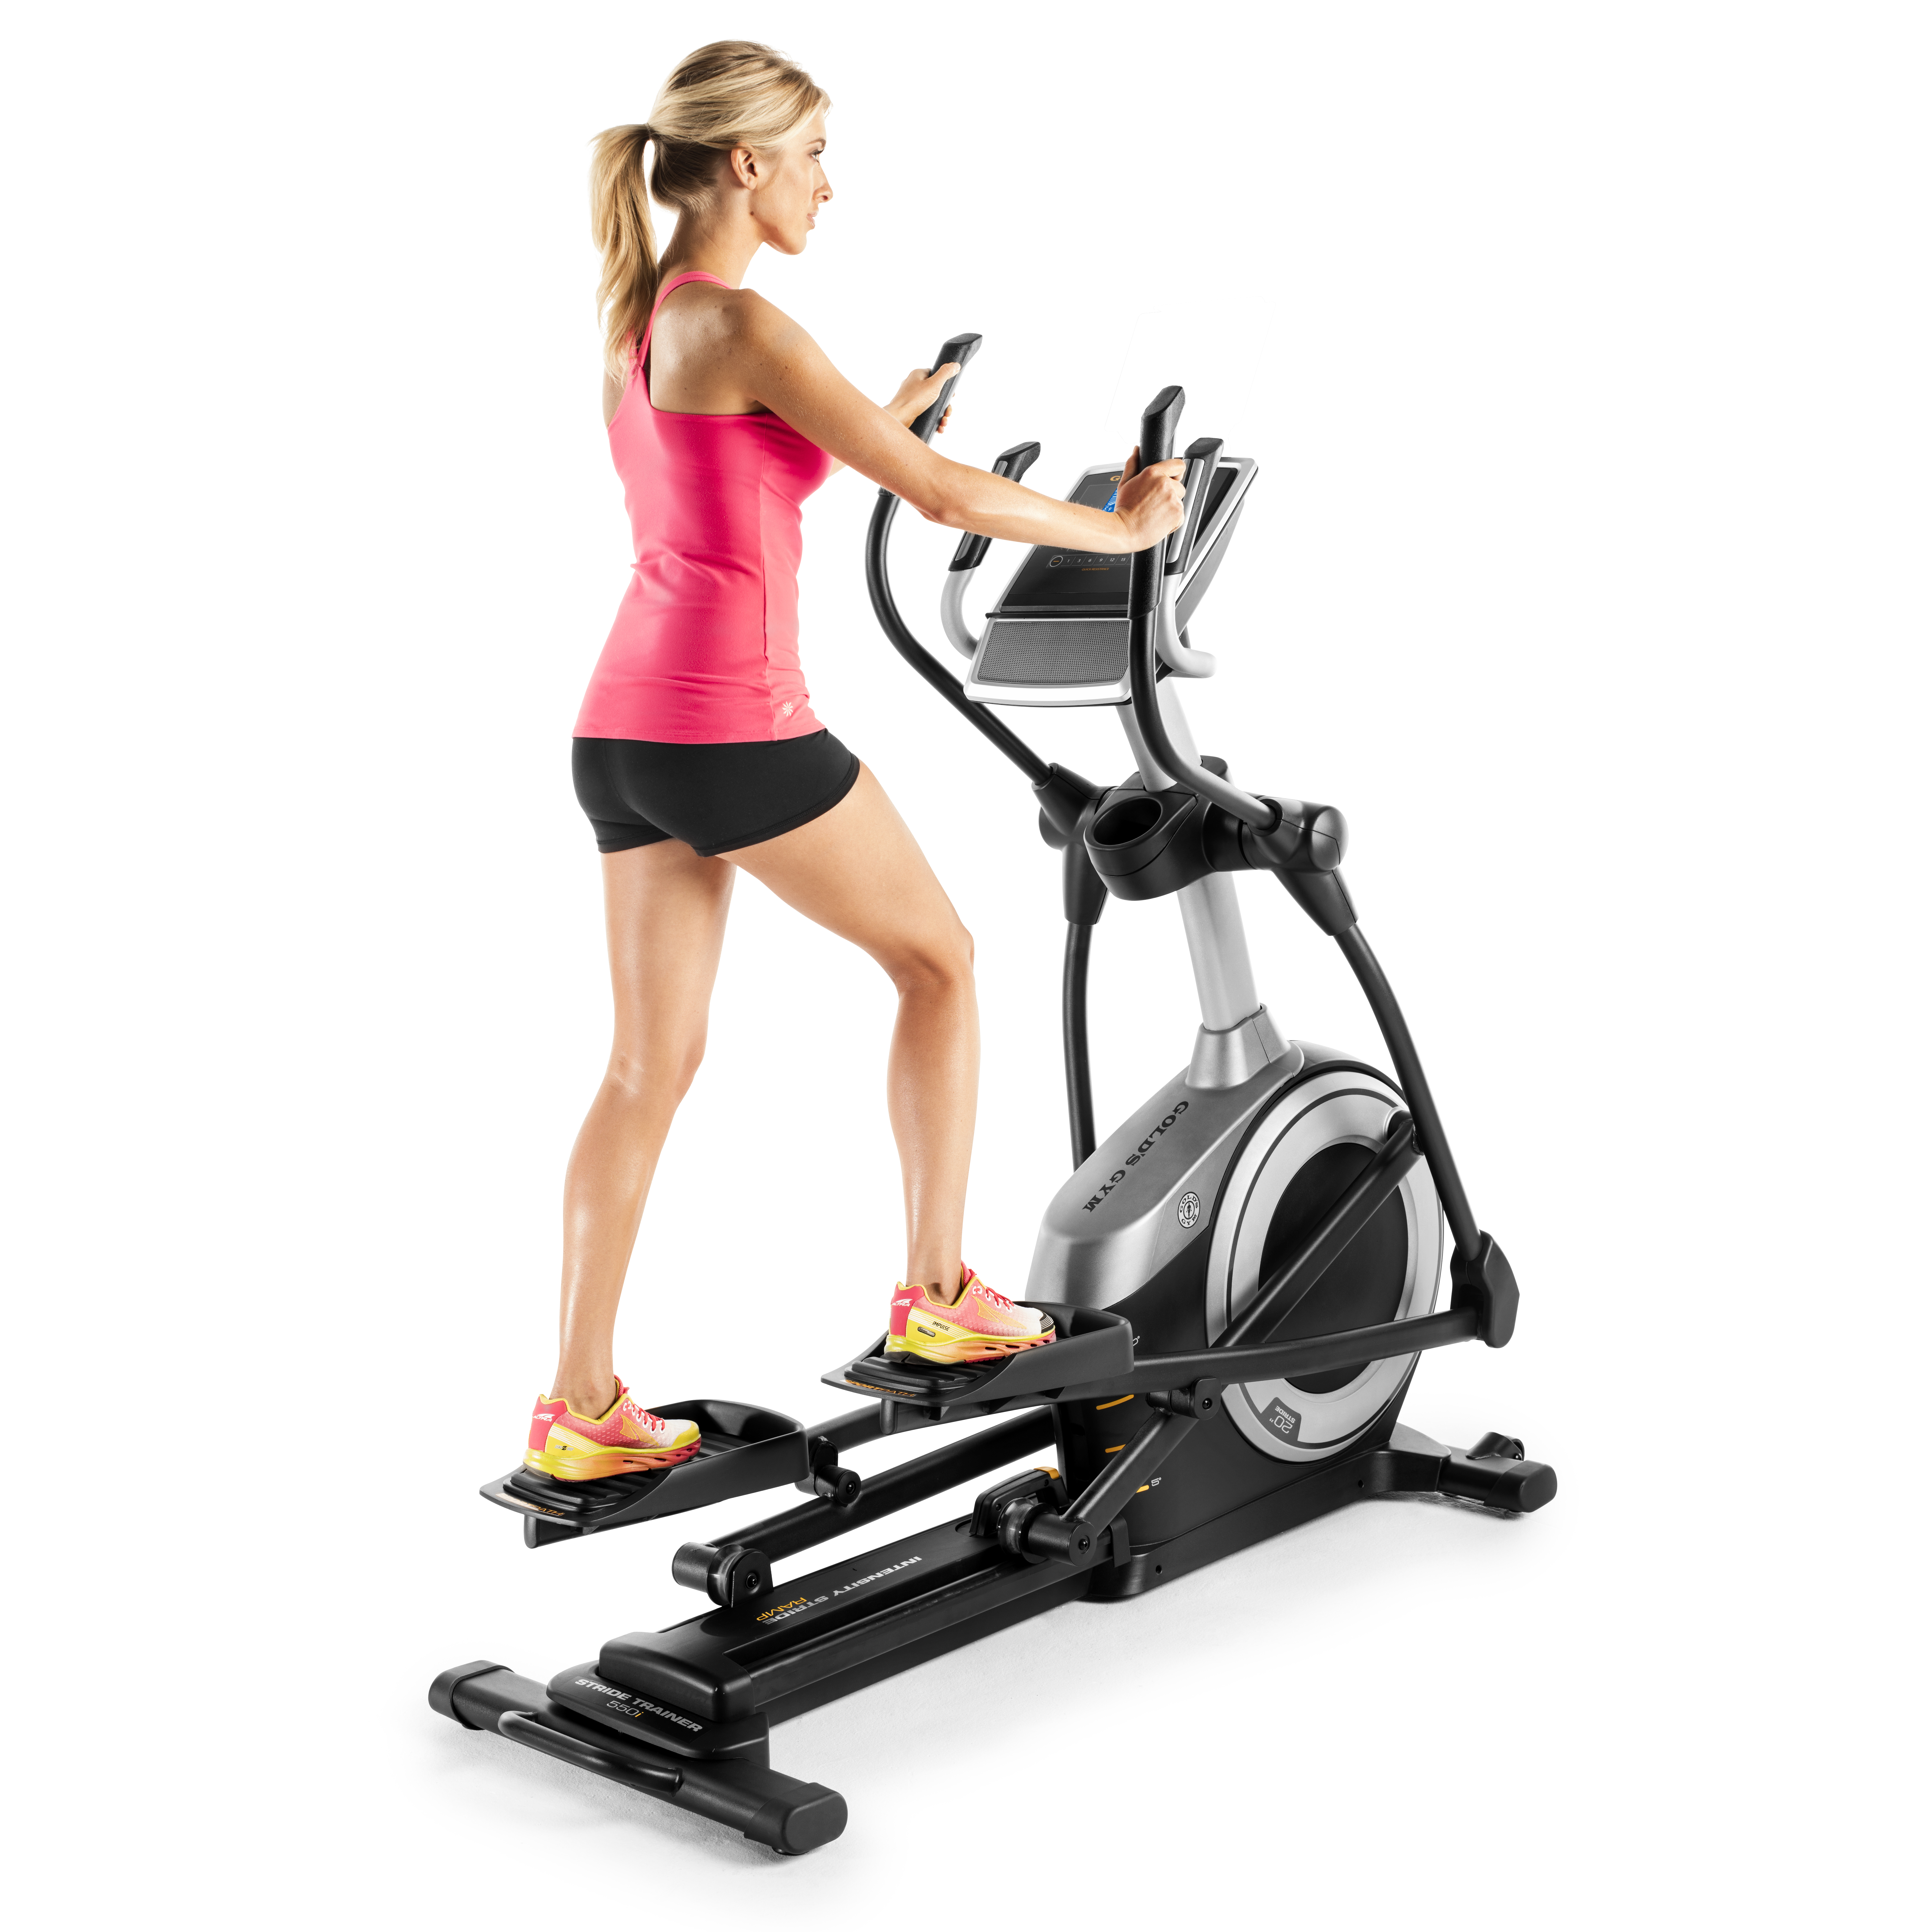 Gold's Gym Stride Trainer 550i Elliptical with Adjustable Incline